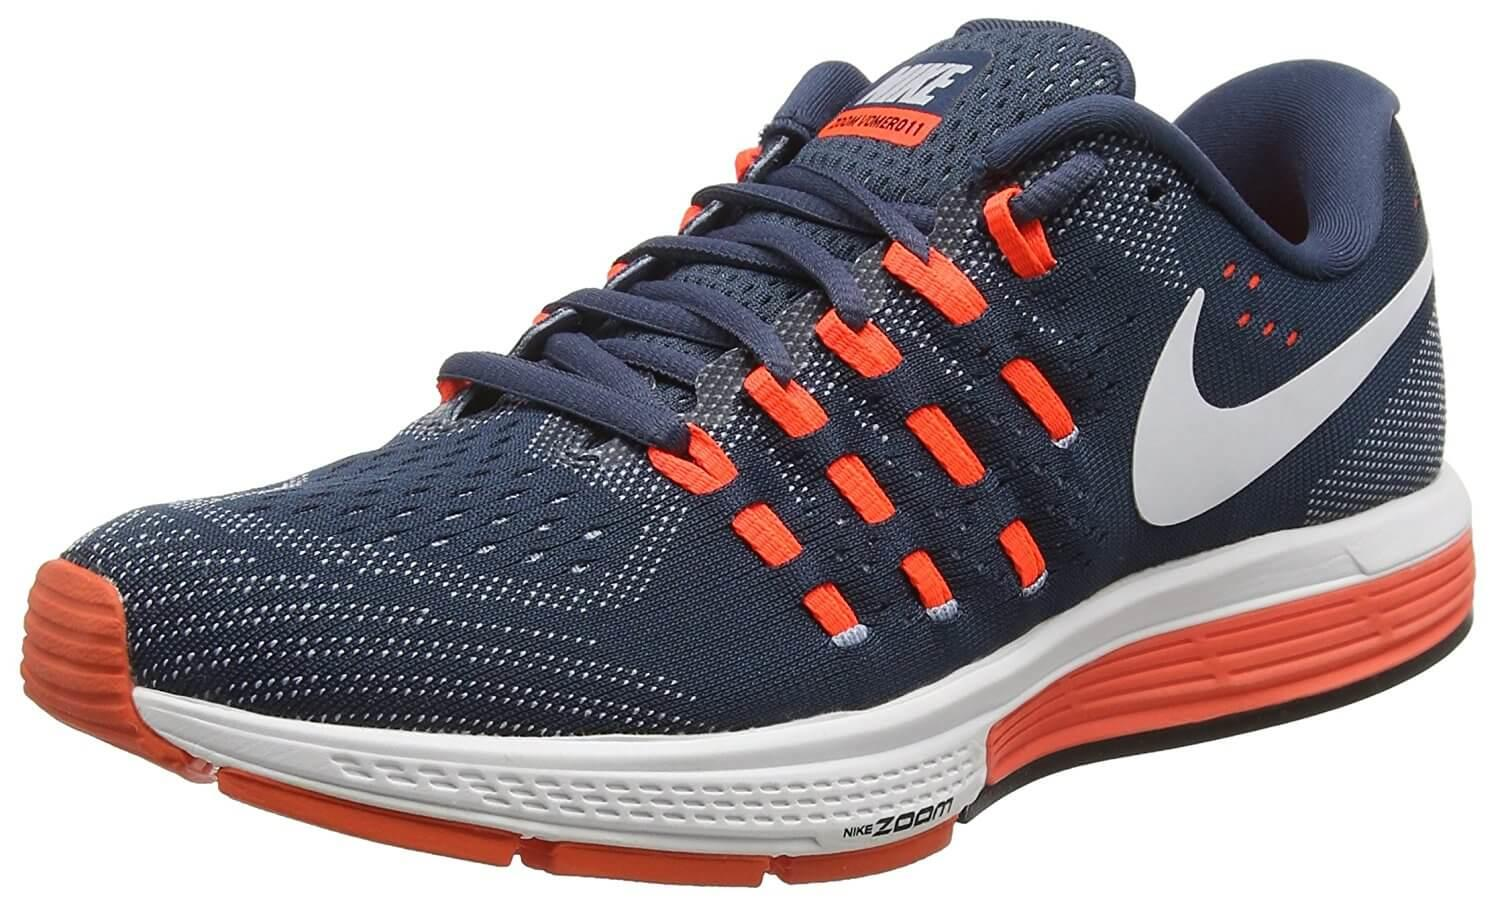 the Nike Air Zoom Vomero 11 is a durable running shoe that will last for  many ... d33a60084